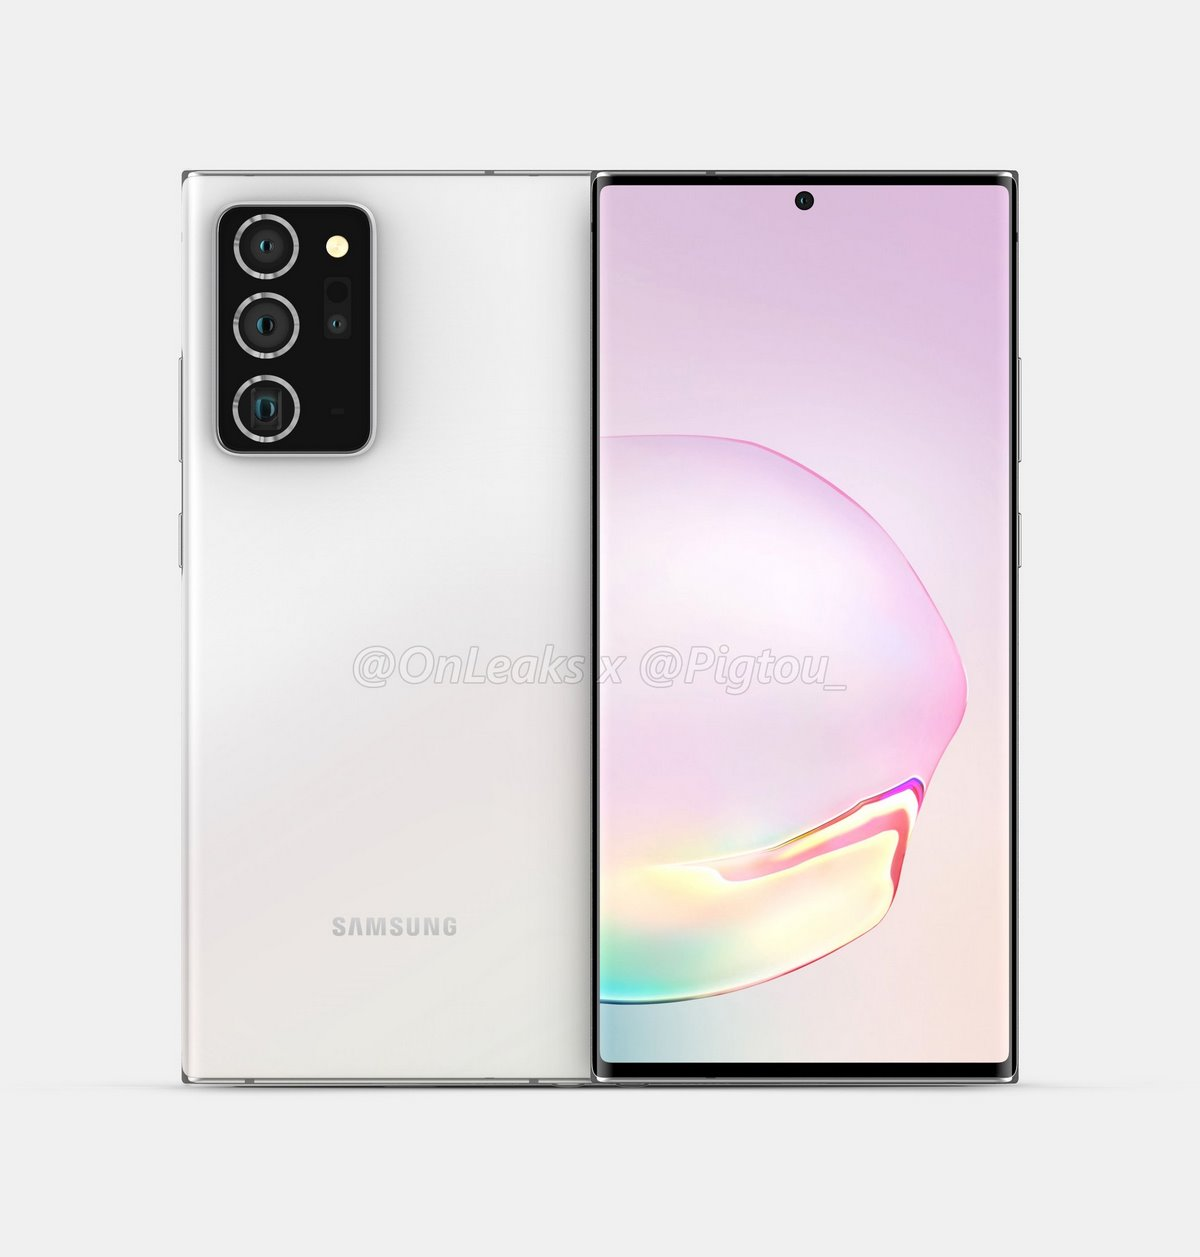 diseño del <stro />Samsung</strong>® Galaxy Note 20+» width=»1200″ height=»1257″ srcset=»https://www.androidsis.com/wp-content/uploads/2020/05/diseño-del-samsung-galaxy-note-20-3.jpg 1200w, <a target=